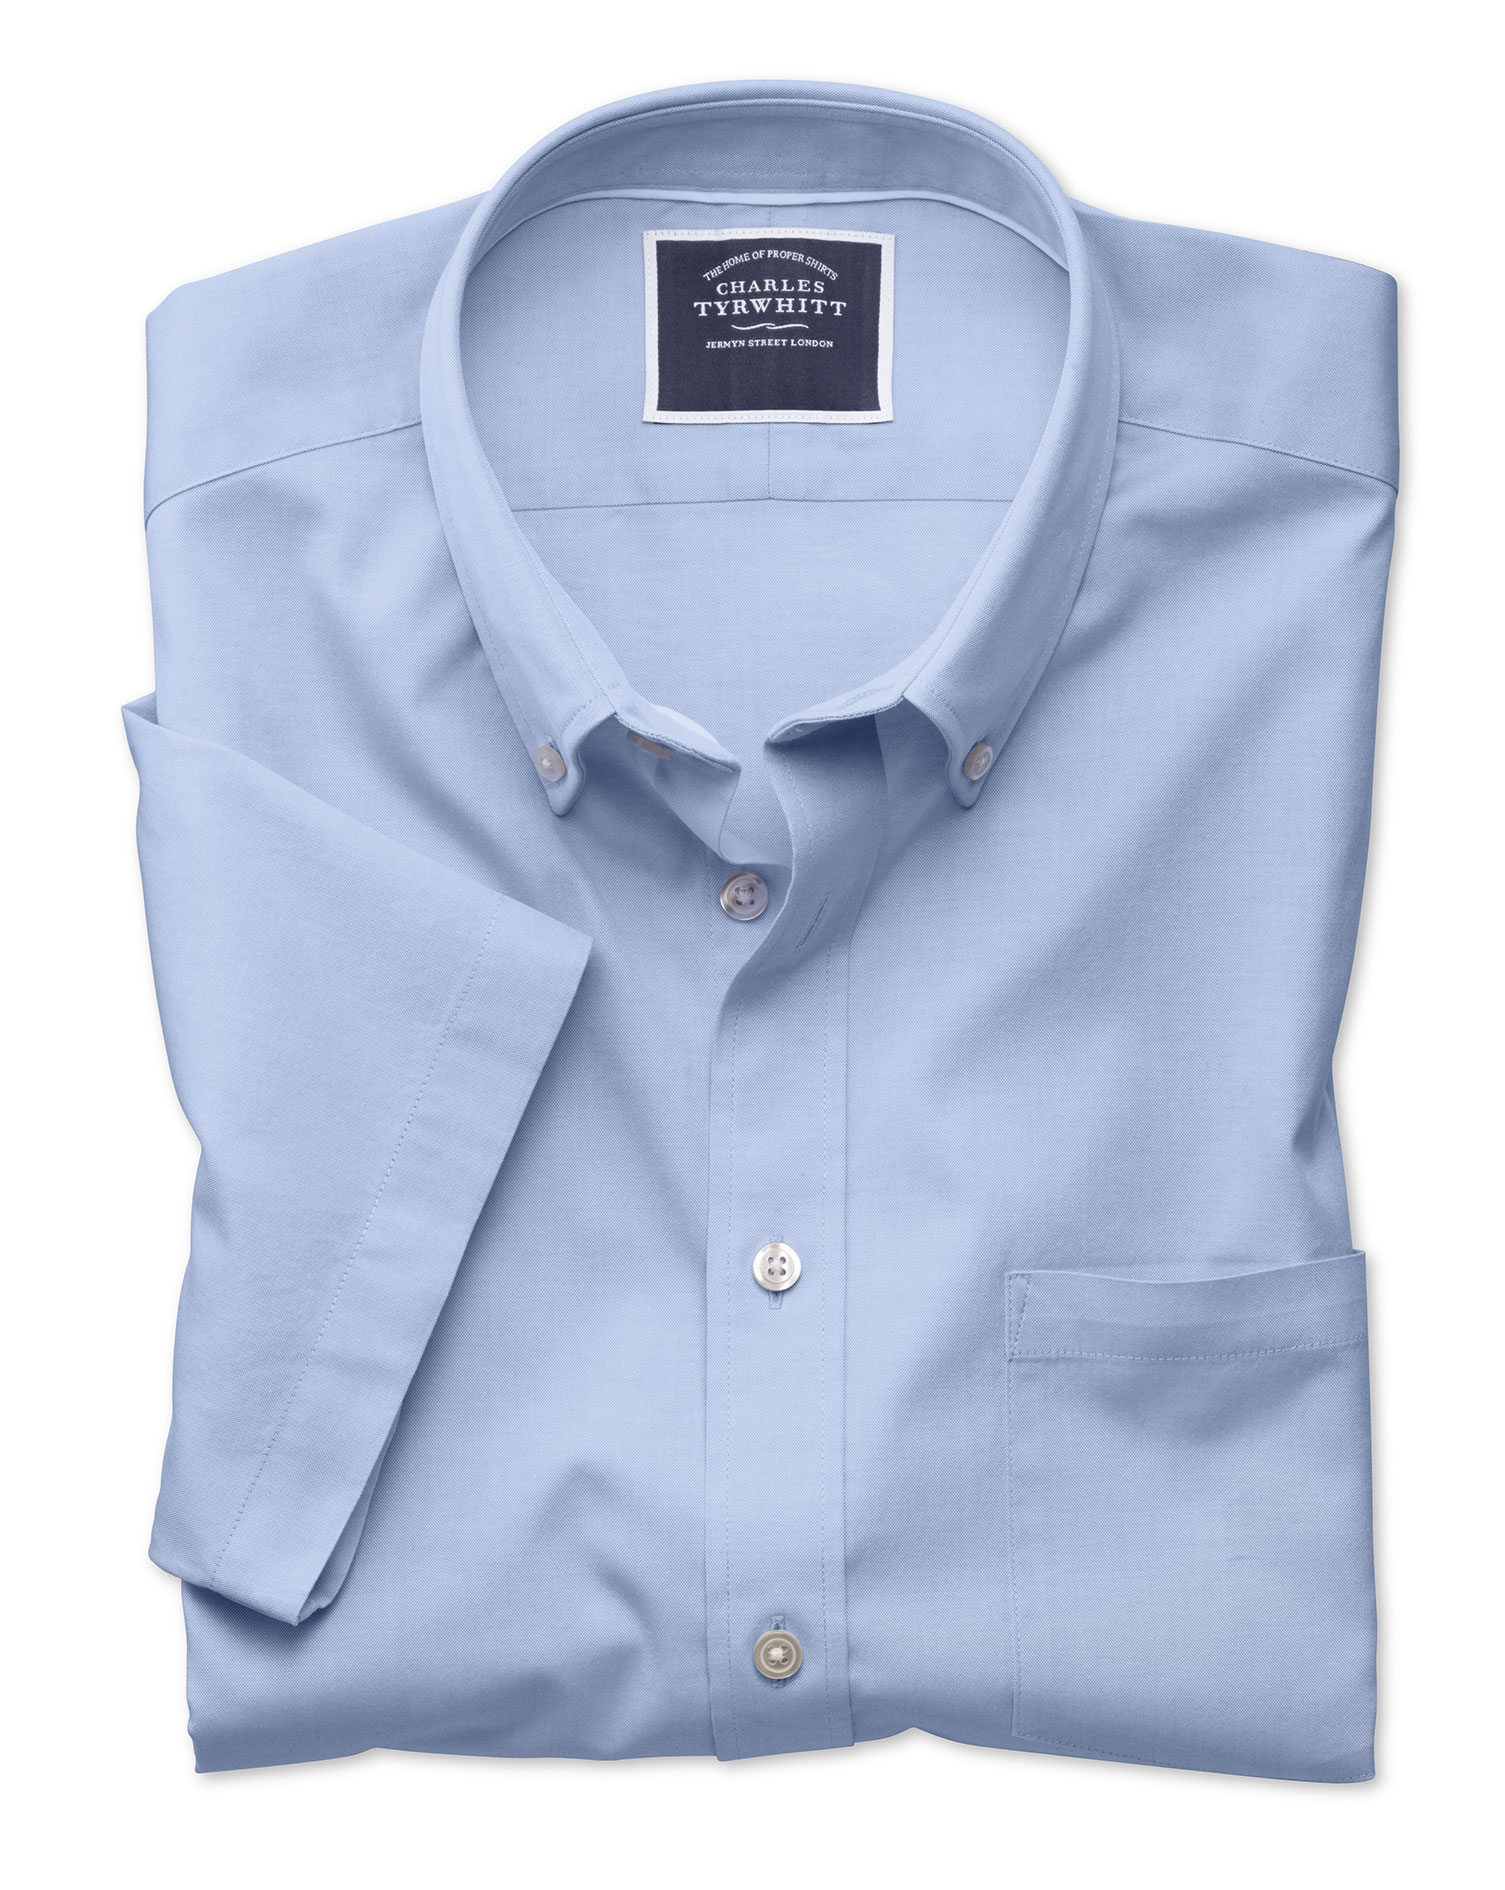 Classic Fit Sky Blue Washed Oxford Short Sleeve Cotton Shirt Single Cuff Size XL by Charles Tyrwhitt